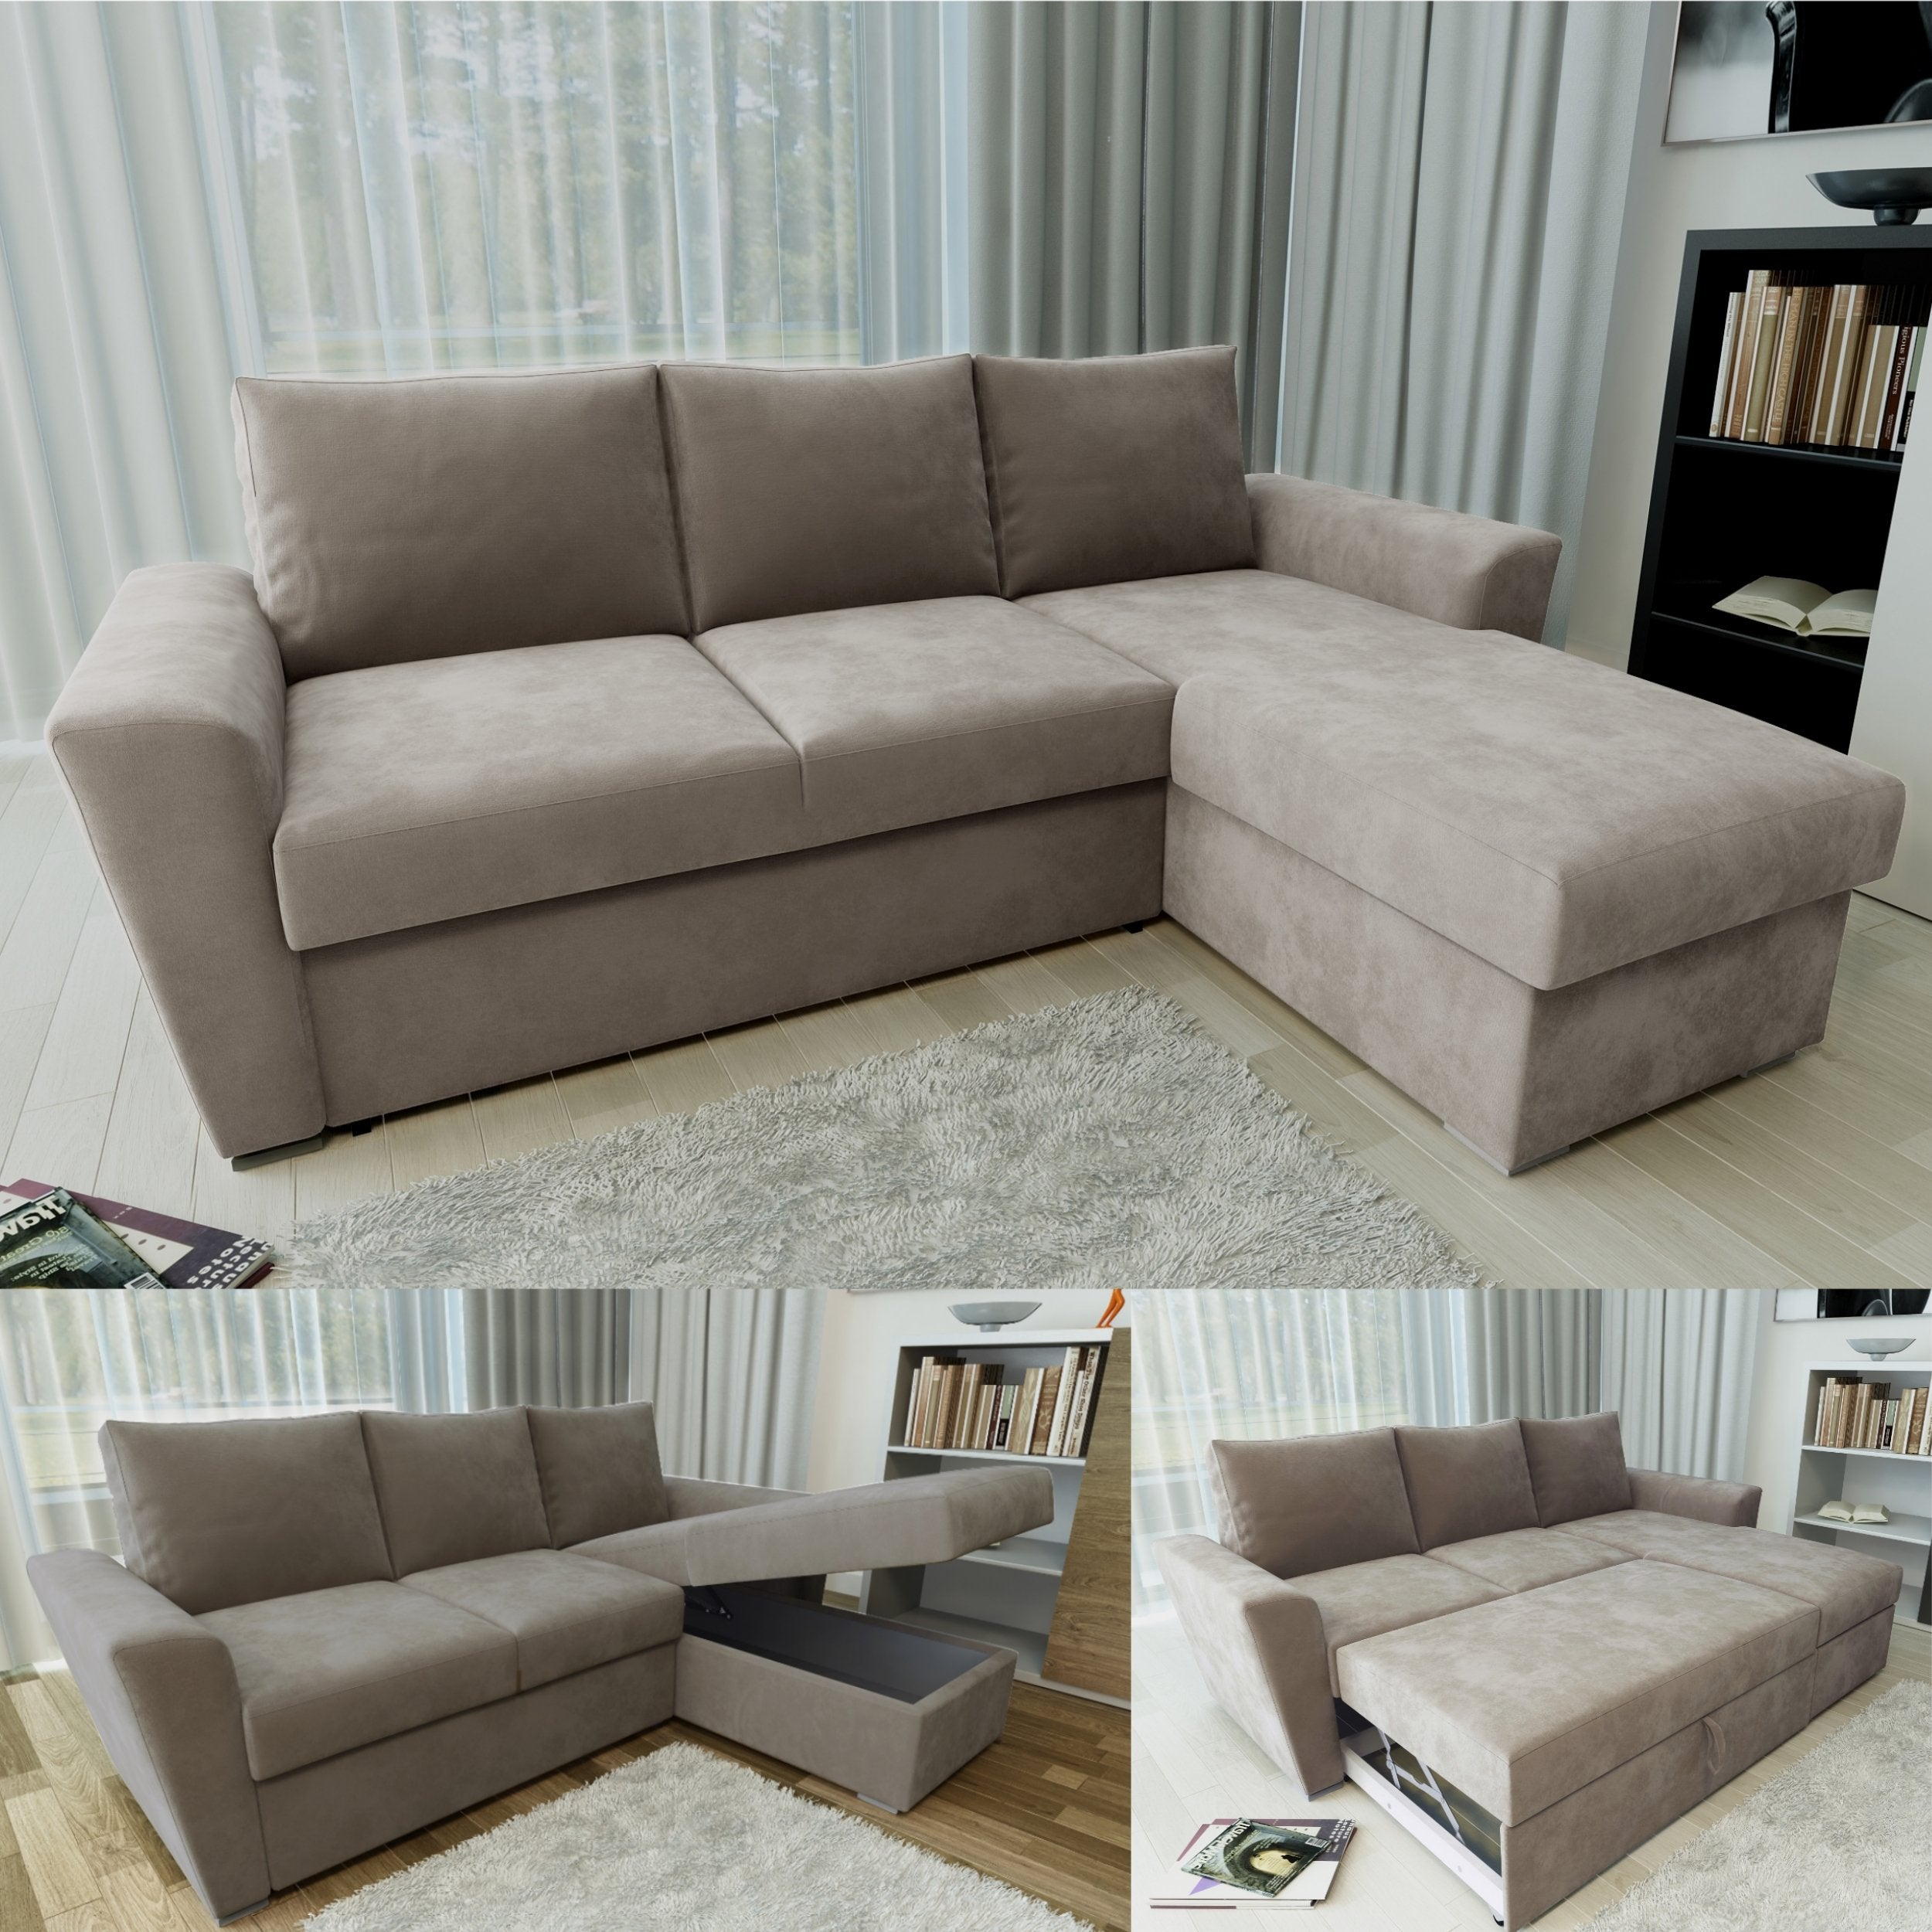 Picture of: Stanford L Shape Corner Sofabed With Storage In Taupe Online4furniture Co Uk Online4furniture